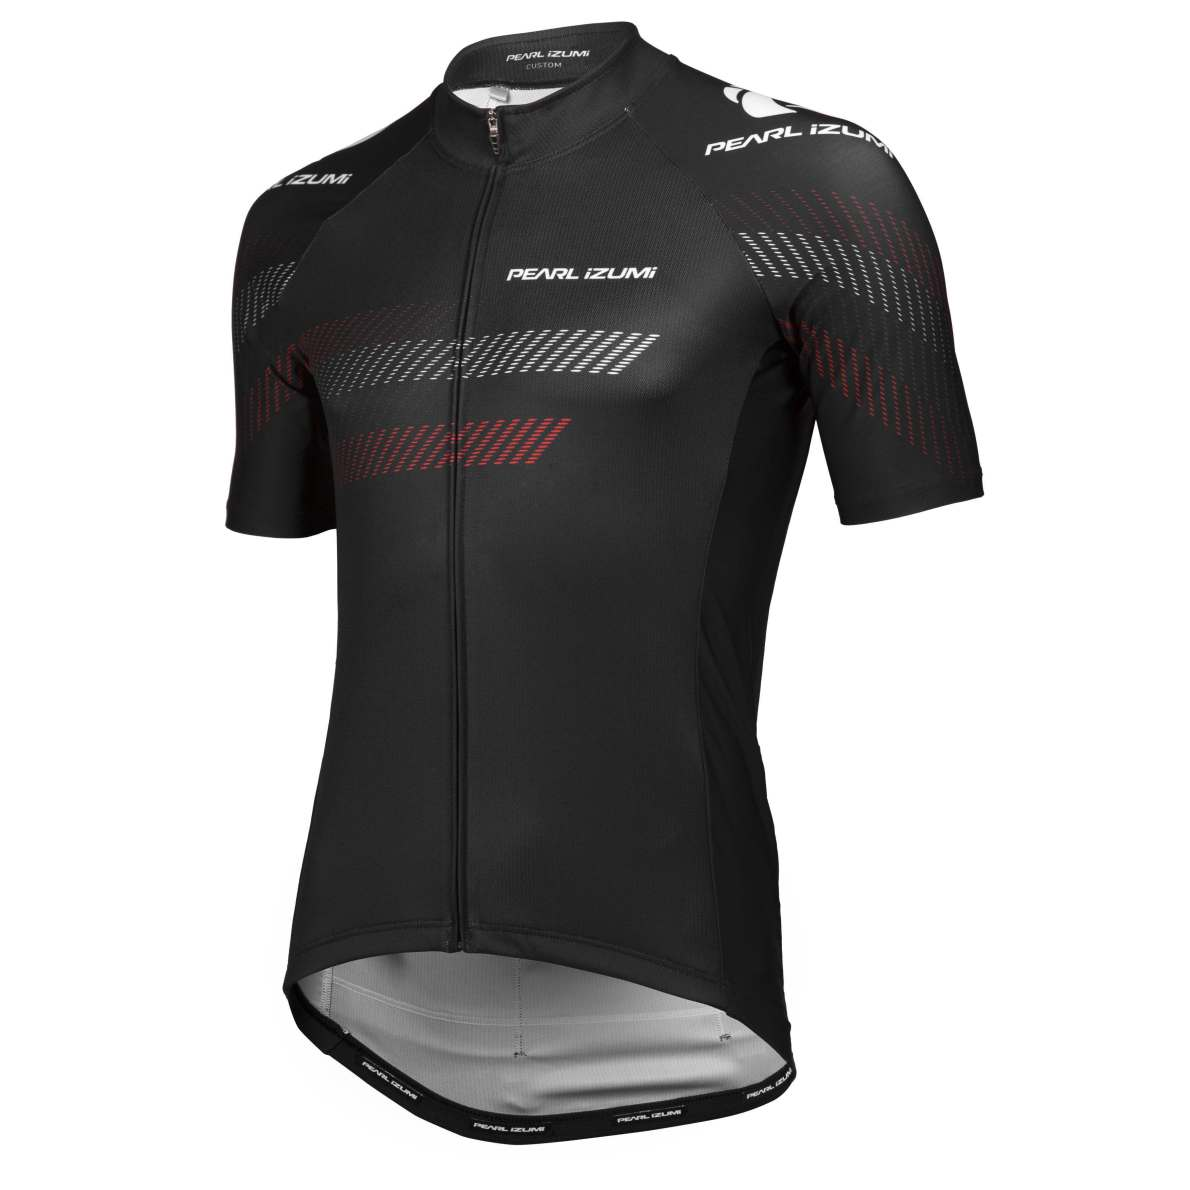 5b20200a5 Pearl Izumi Womens Factory Store Elite Pursuit LTD Jersey Black L ...